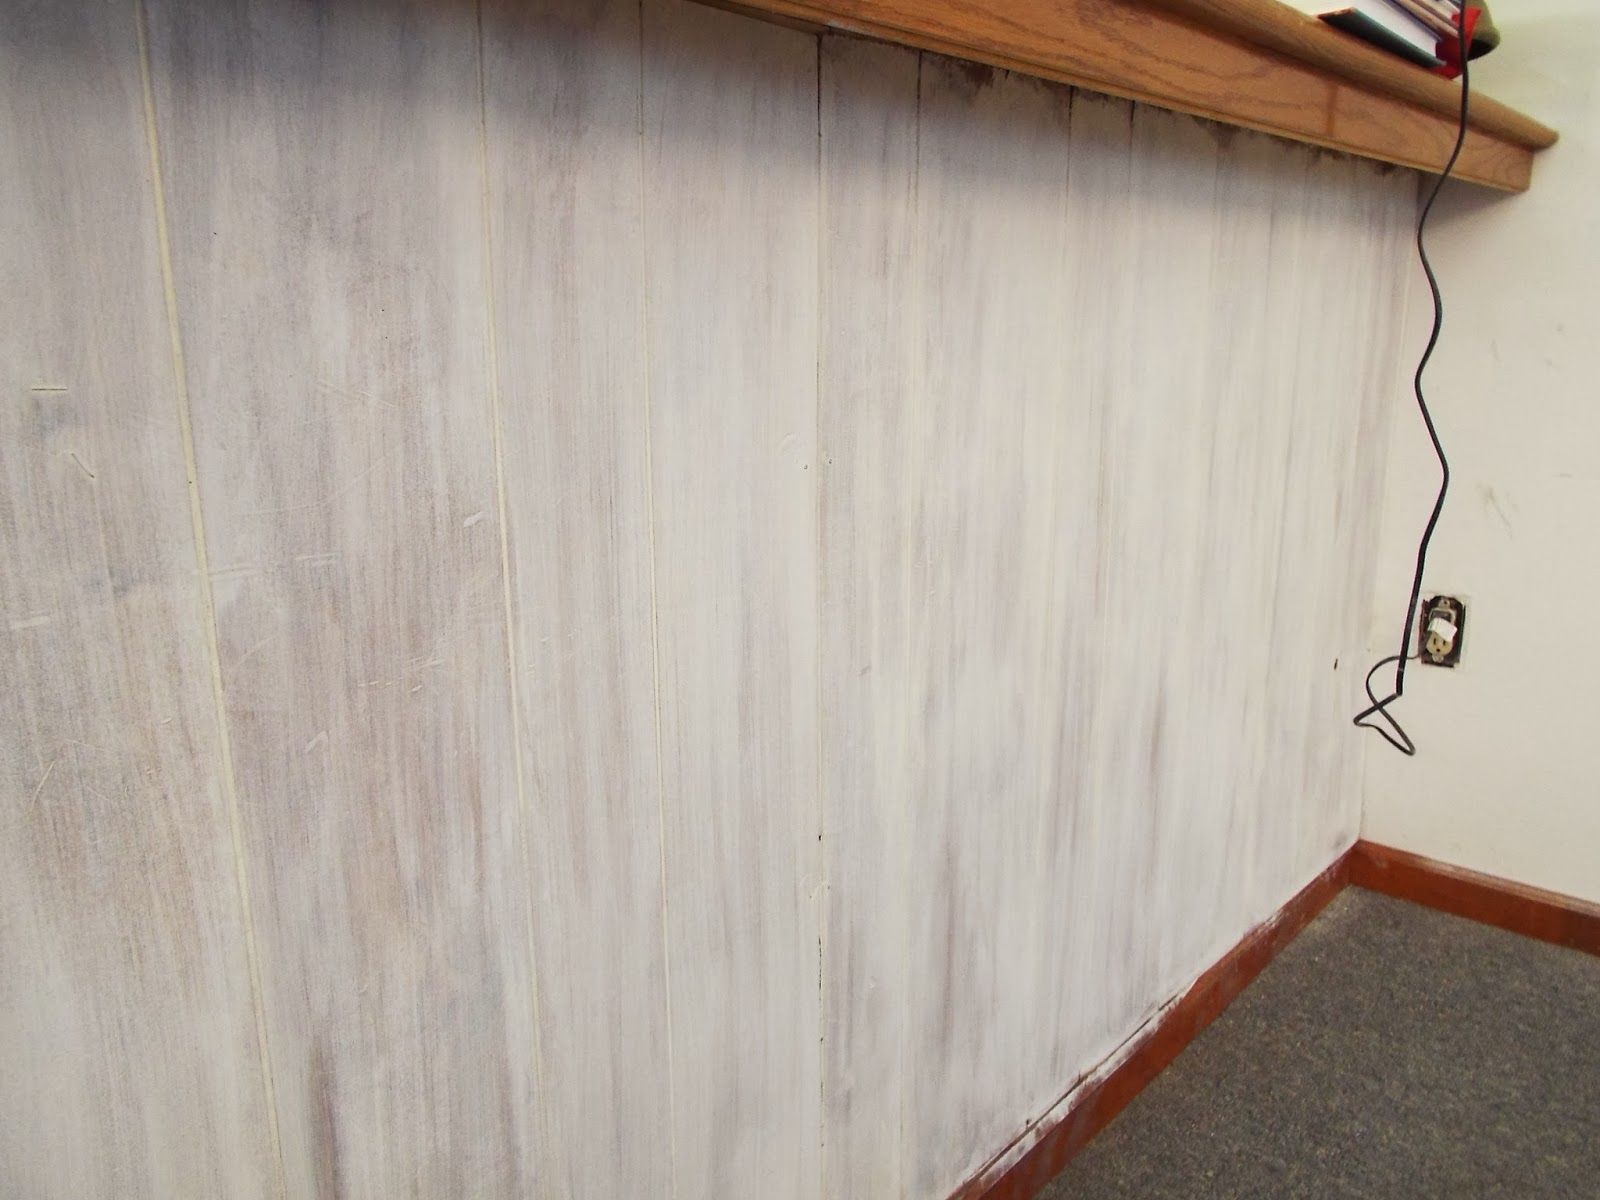 Whitewashing Wall Paneling With Annie Sloan Chalk Paint Painting Wood Paneling White Washed Wood Paneling Wall Paneling